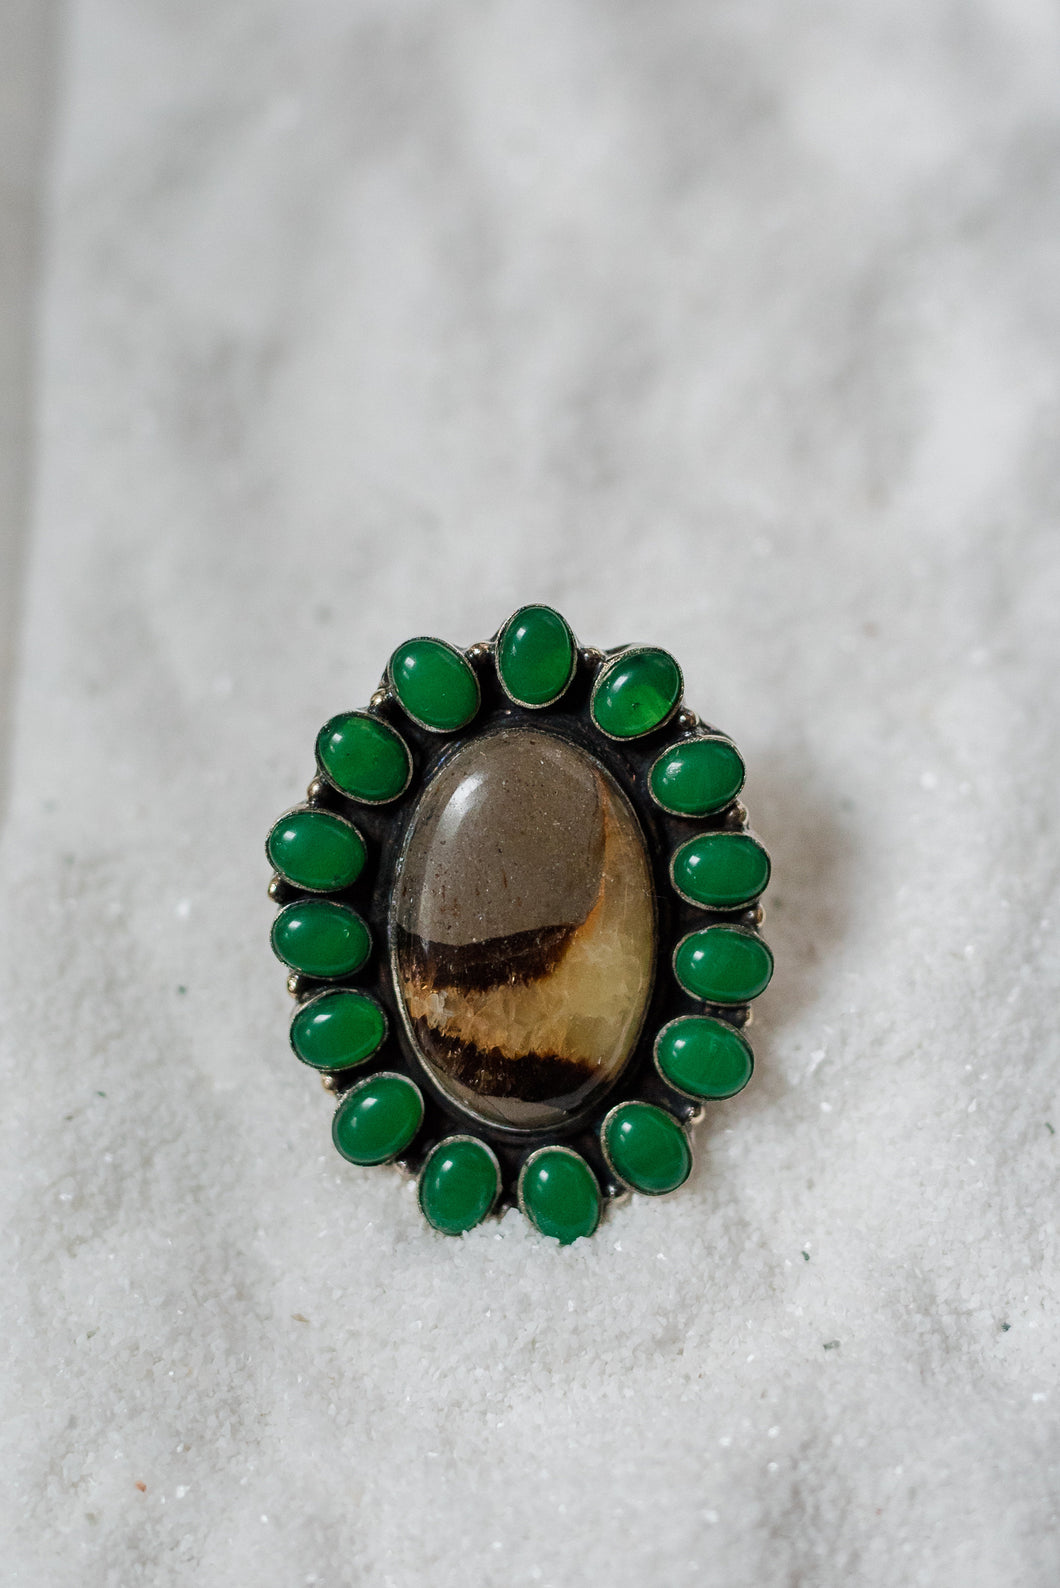 Dark Marble with Green Accent Stone Ring